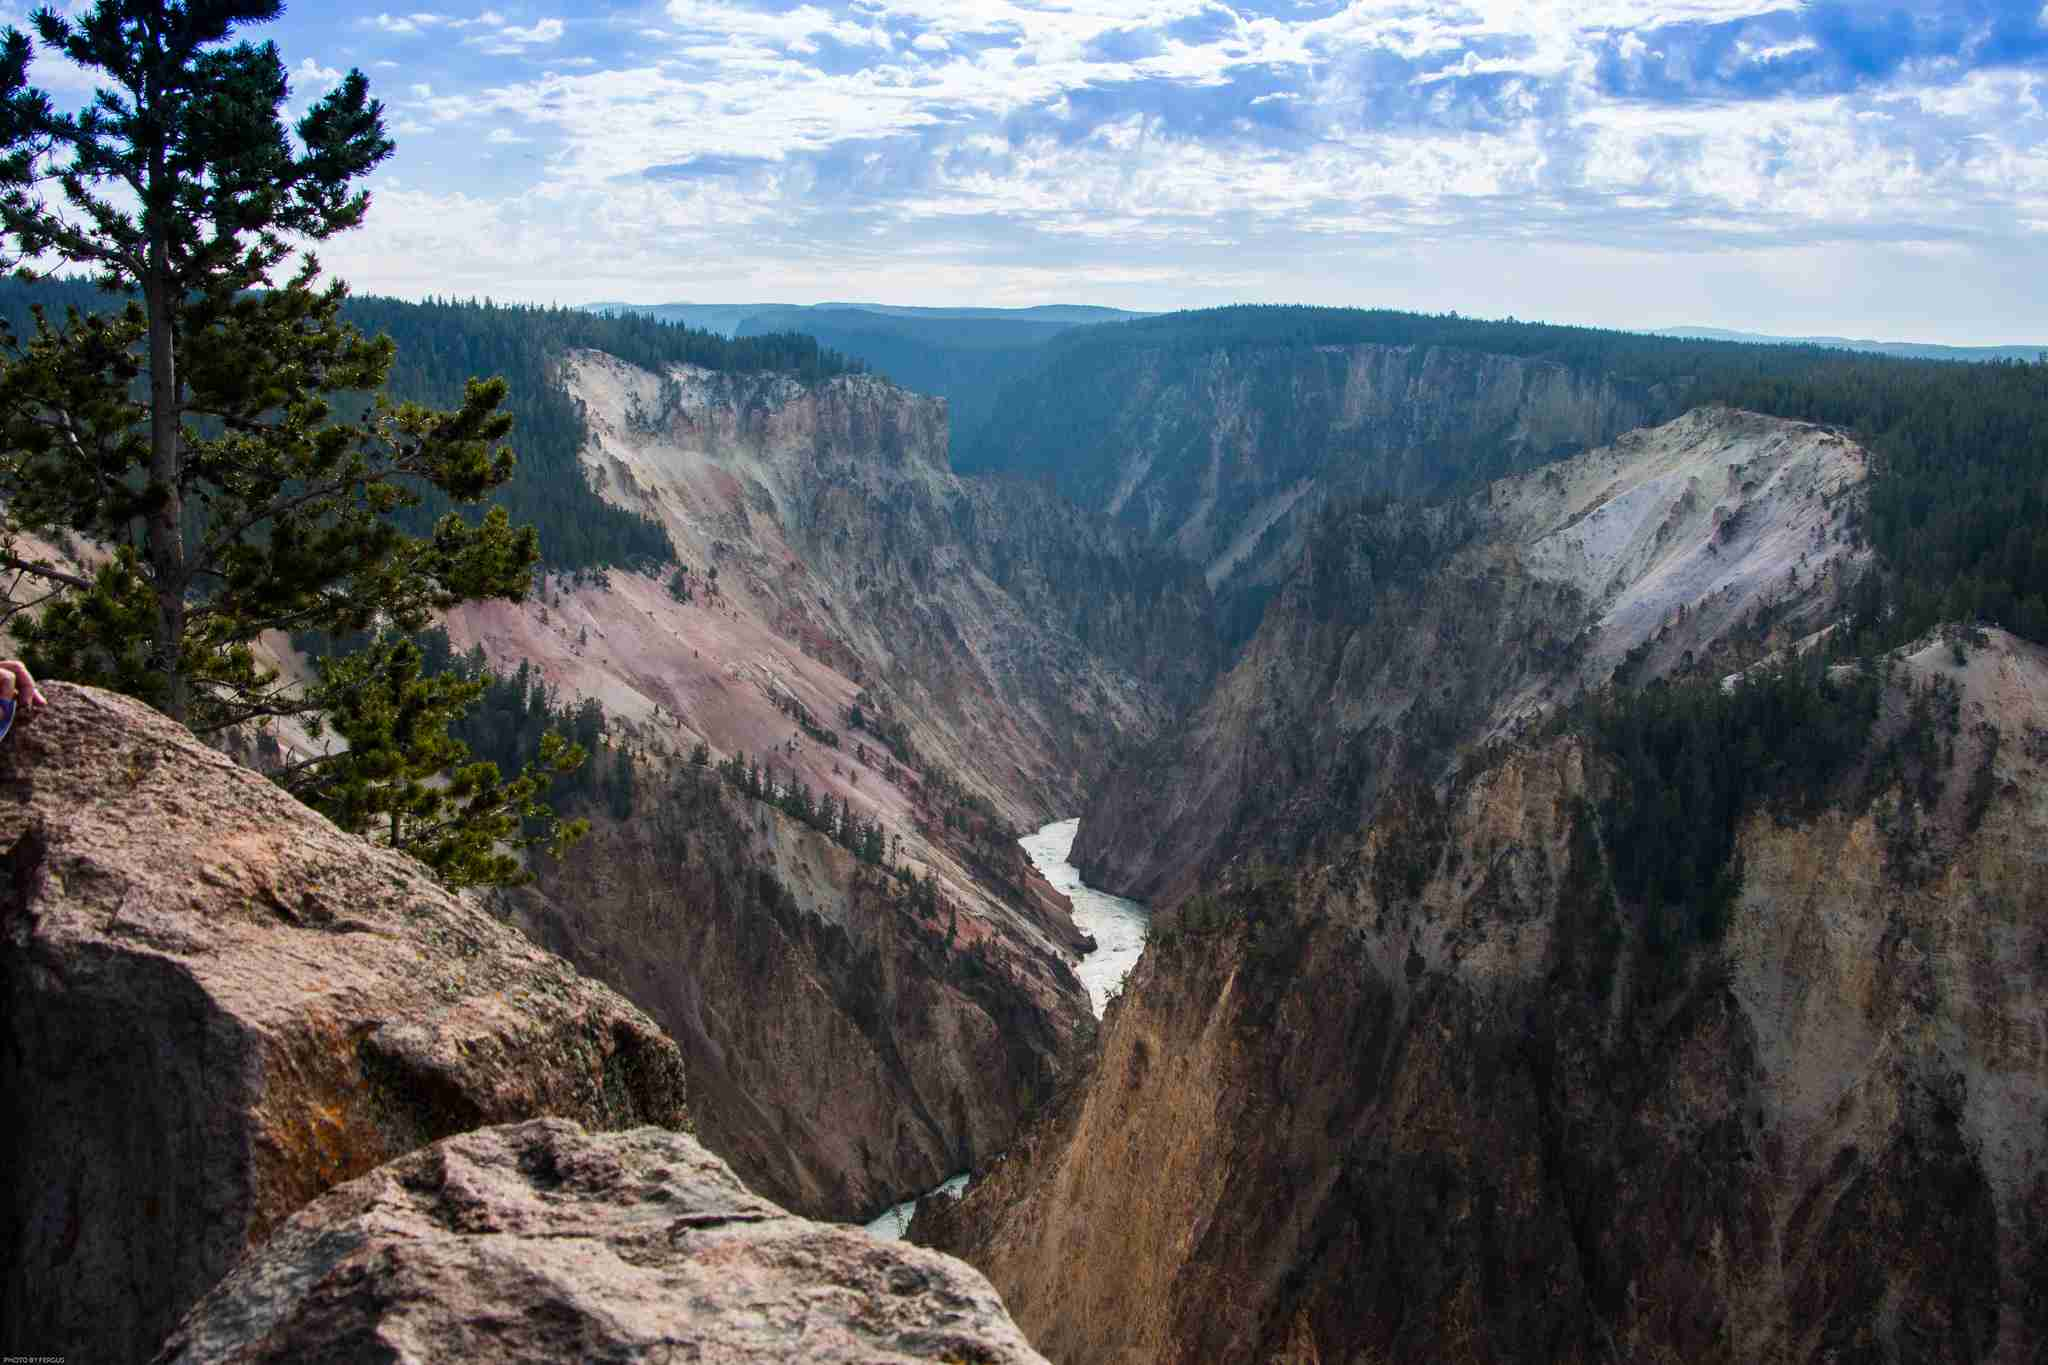 View of mountains and river running through them in Yellowstone National Park